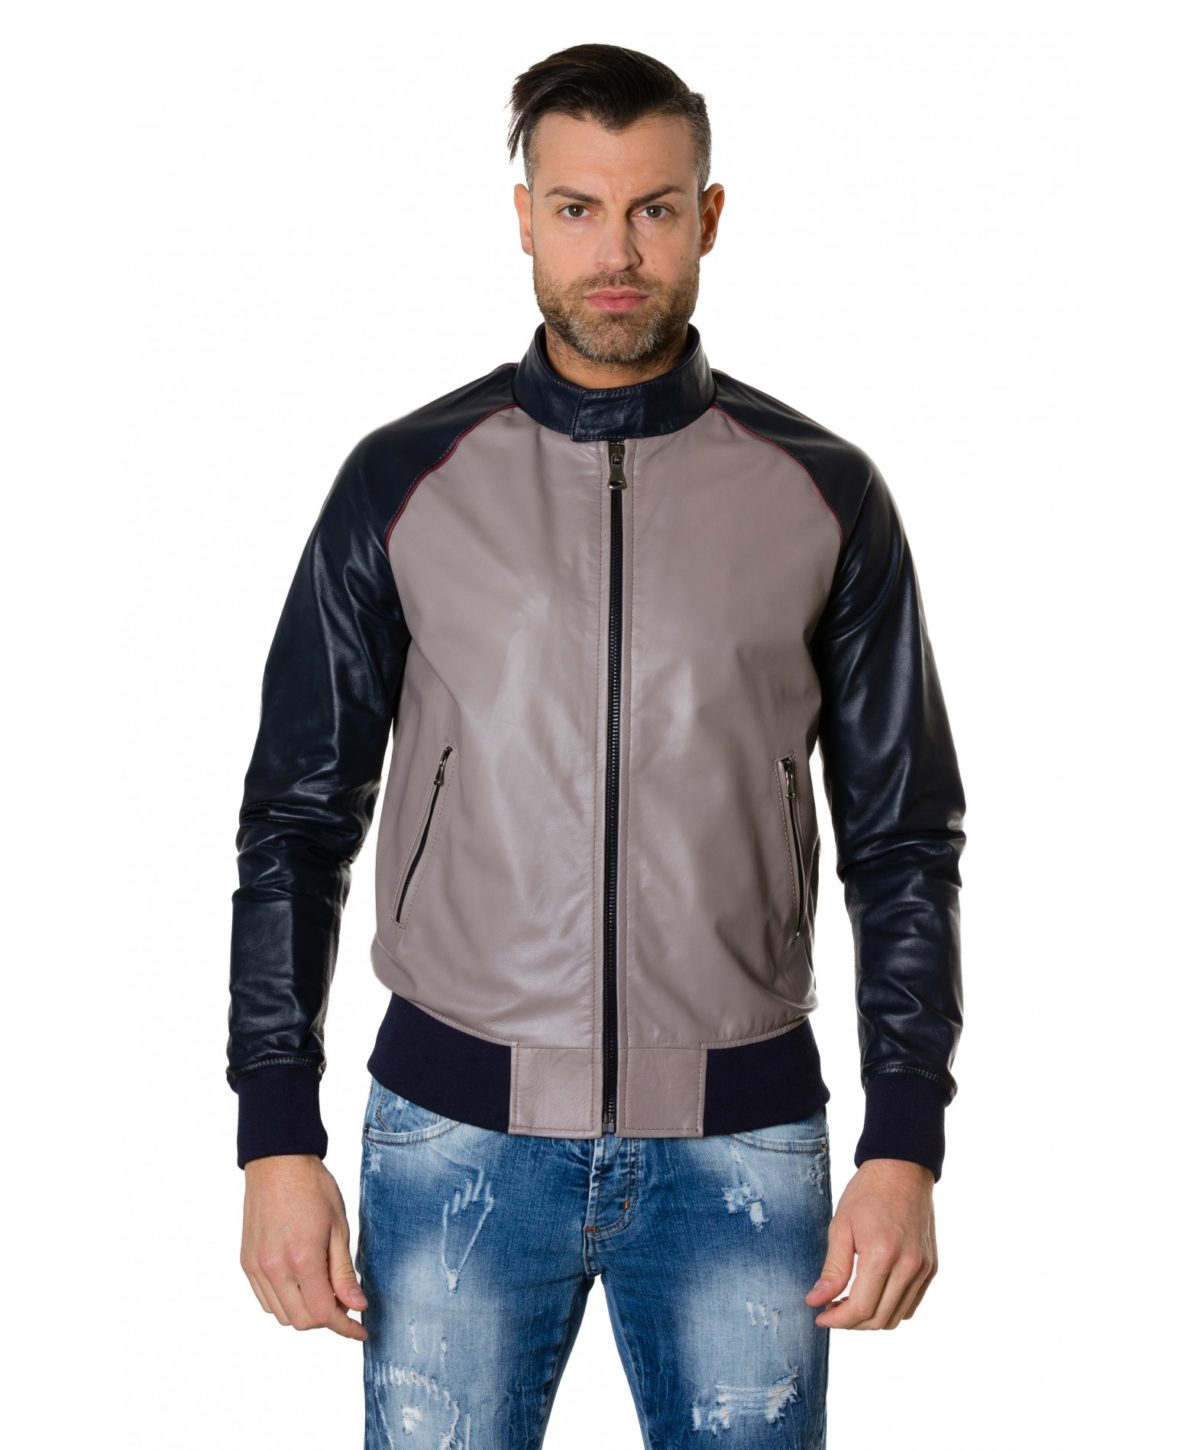 1066-greyblue-colour-leather-bomber-jacket-smooth-aspect